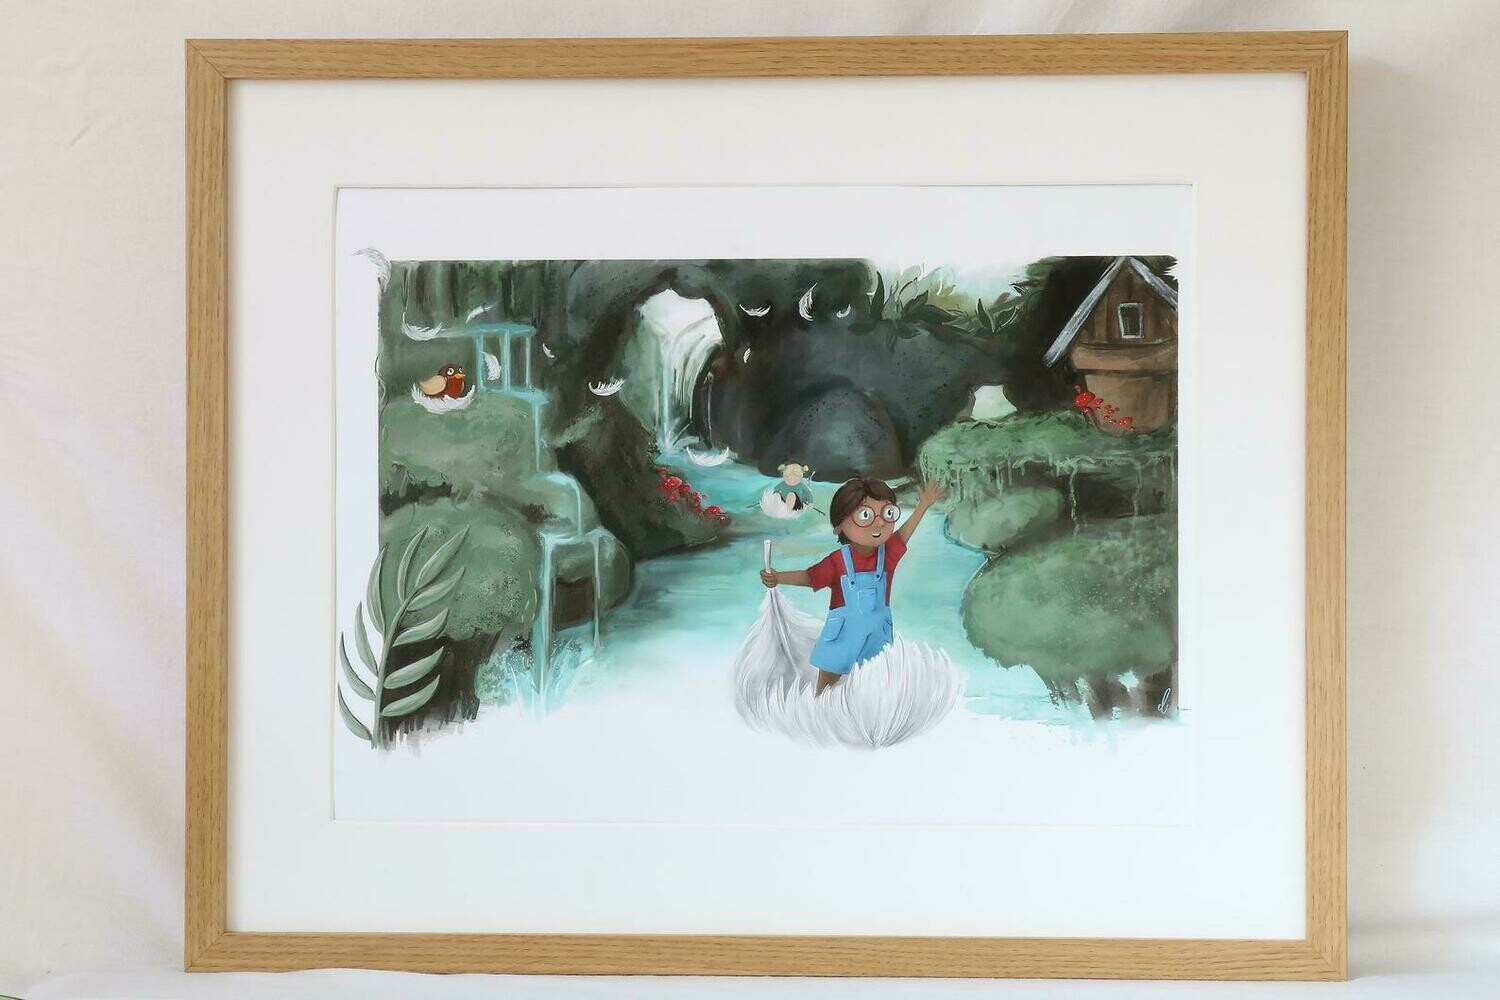 Reflection - A3 Limited Edition Giclee Print